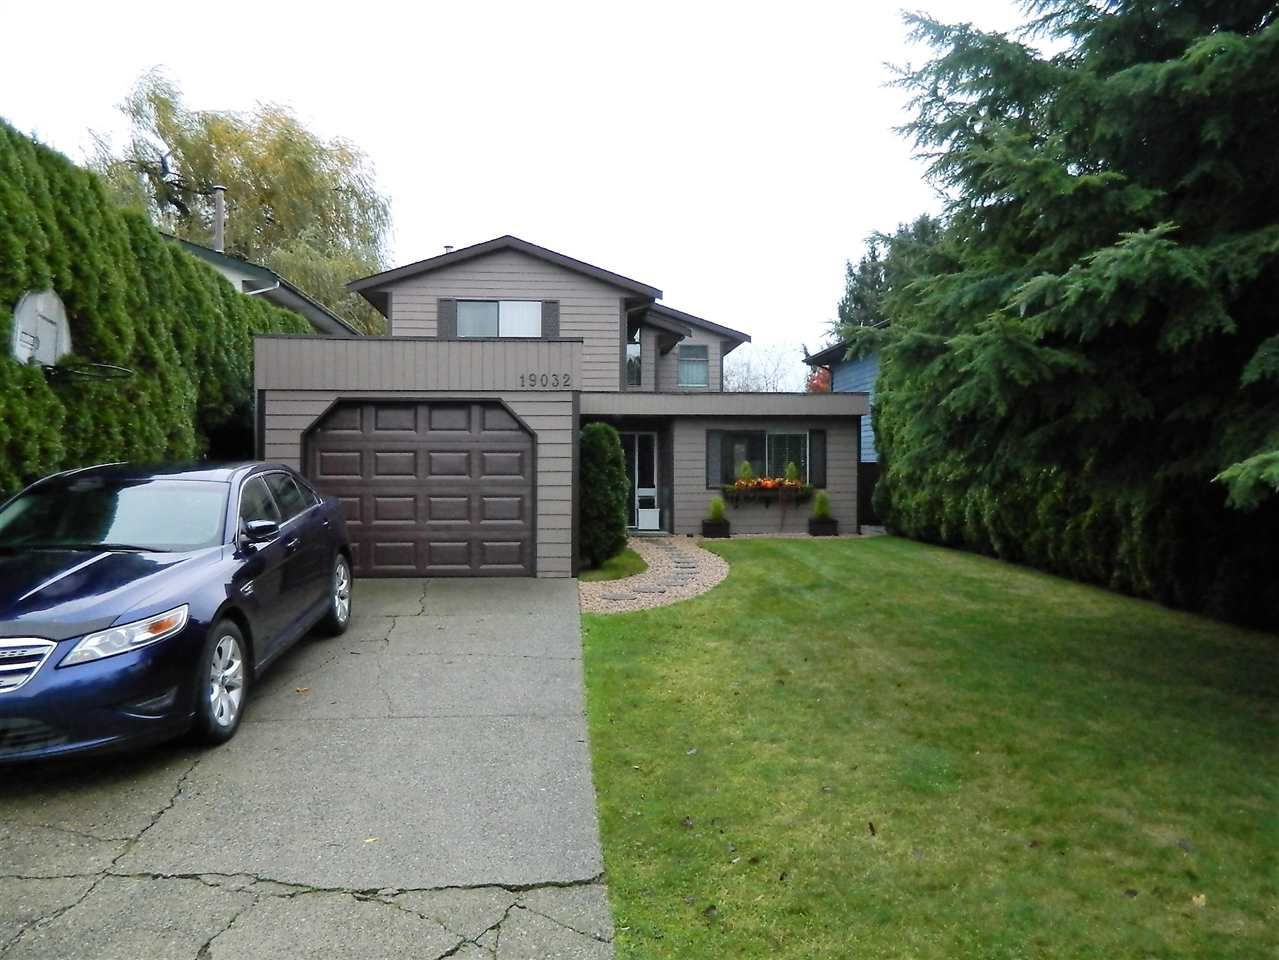 Main Photo: 19032 117A AVENUE in Pitt Meadows: Central Meadows House for sale : MLS®# R2120274